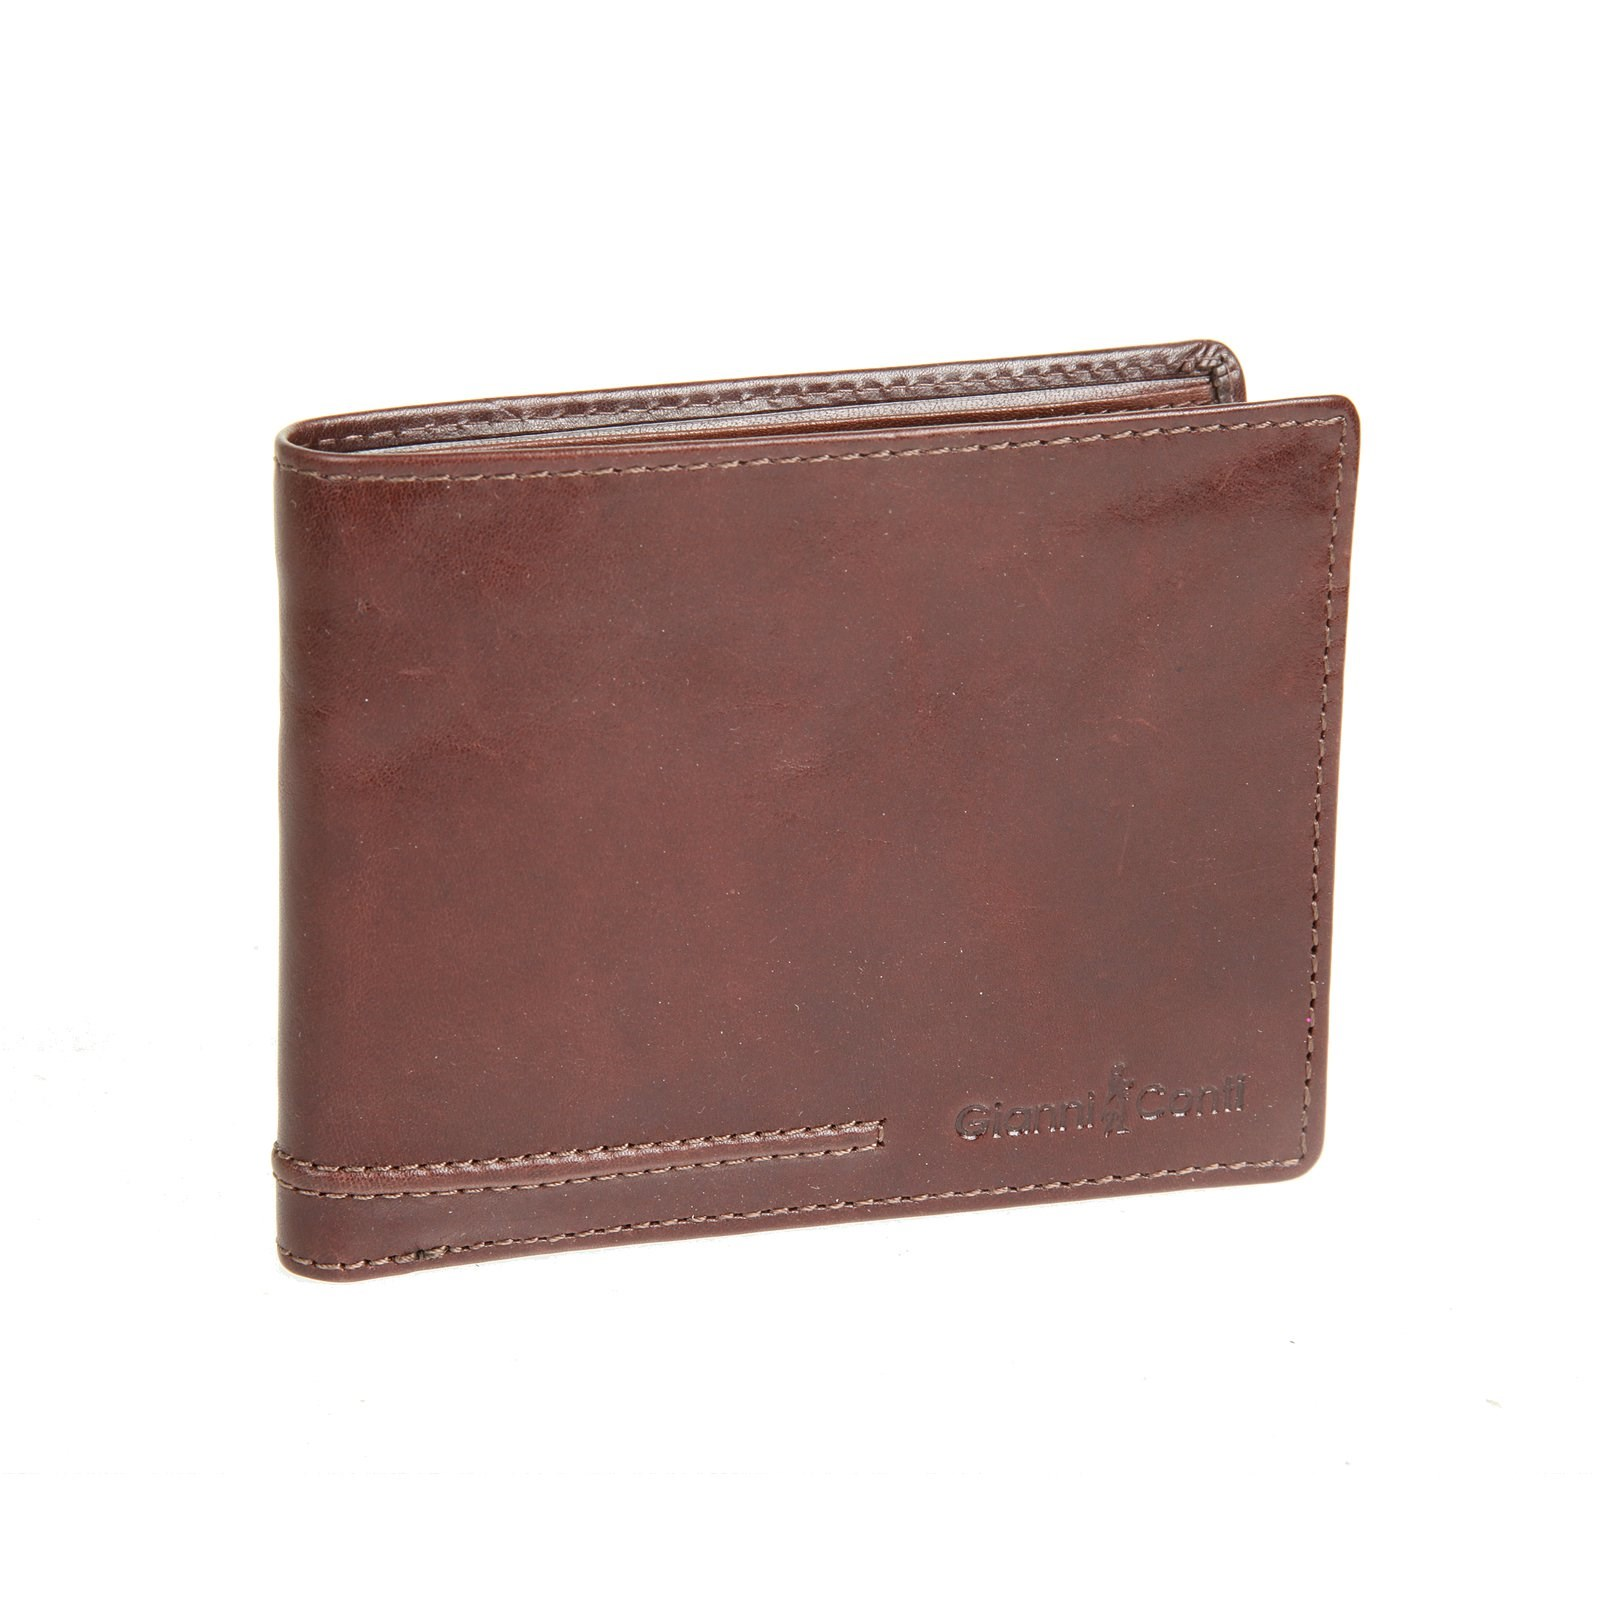 Coin Purse Gianni Conti 707100 Brown simline vintage genuine crazy horse cow leather men men s long hasp wallet wallets purse zipper coin pocket holder with chain